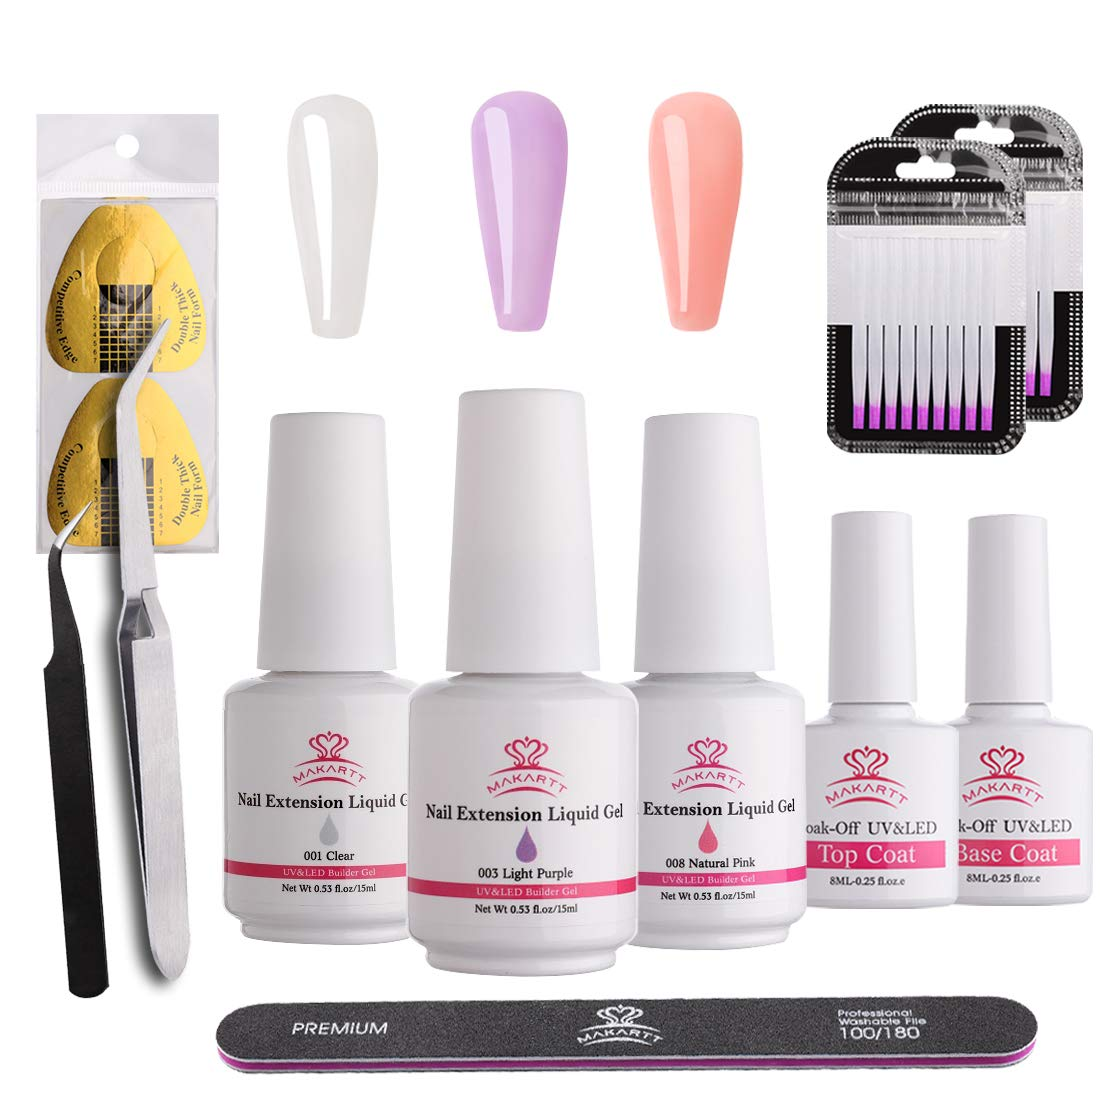 Makartt P-28 Poly Nail Liquid Gel Kit Fiberglass Nail Extension Set Quick UV LED Nail Builder Gel Enhancement Tool with Top Base Coat, Nail Form for Nail Art at Home by Makartt